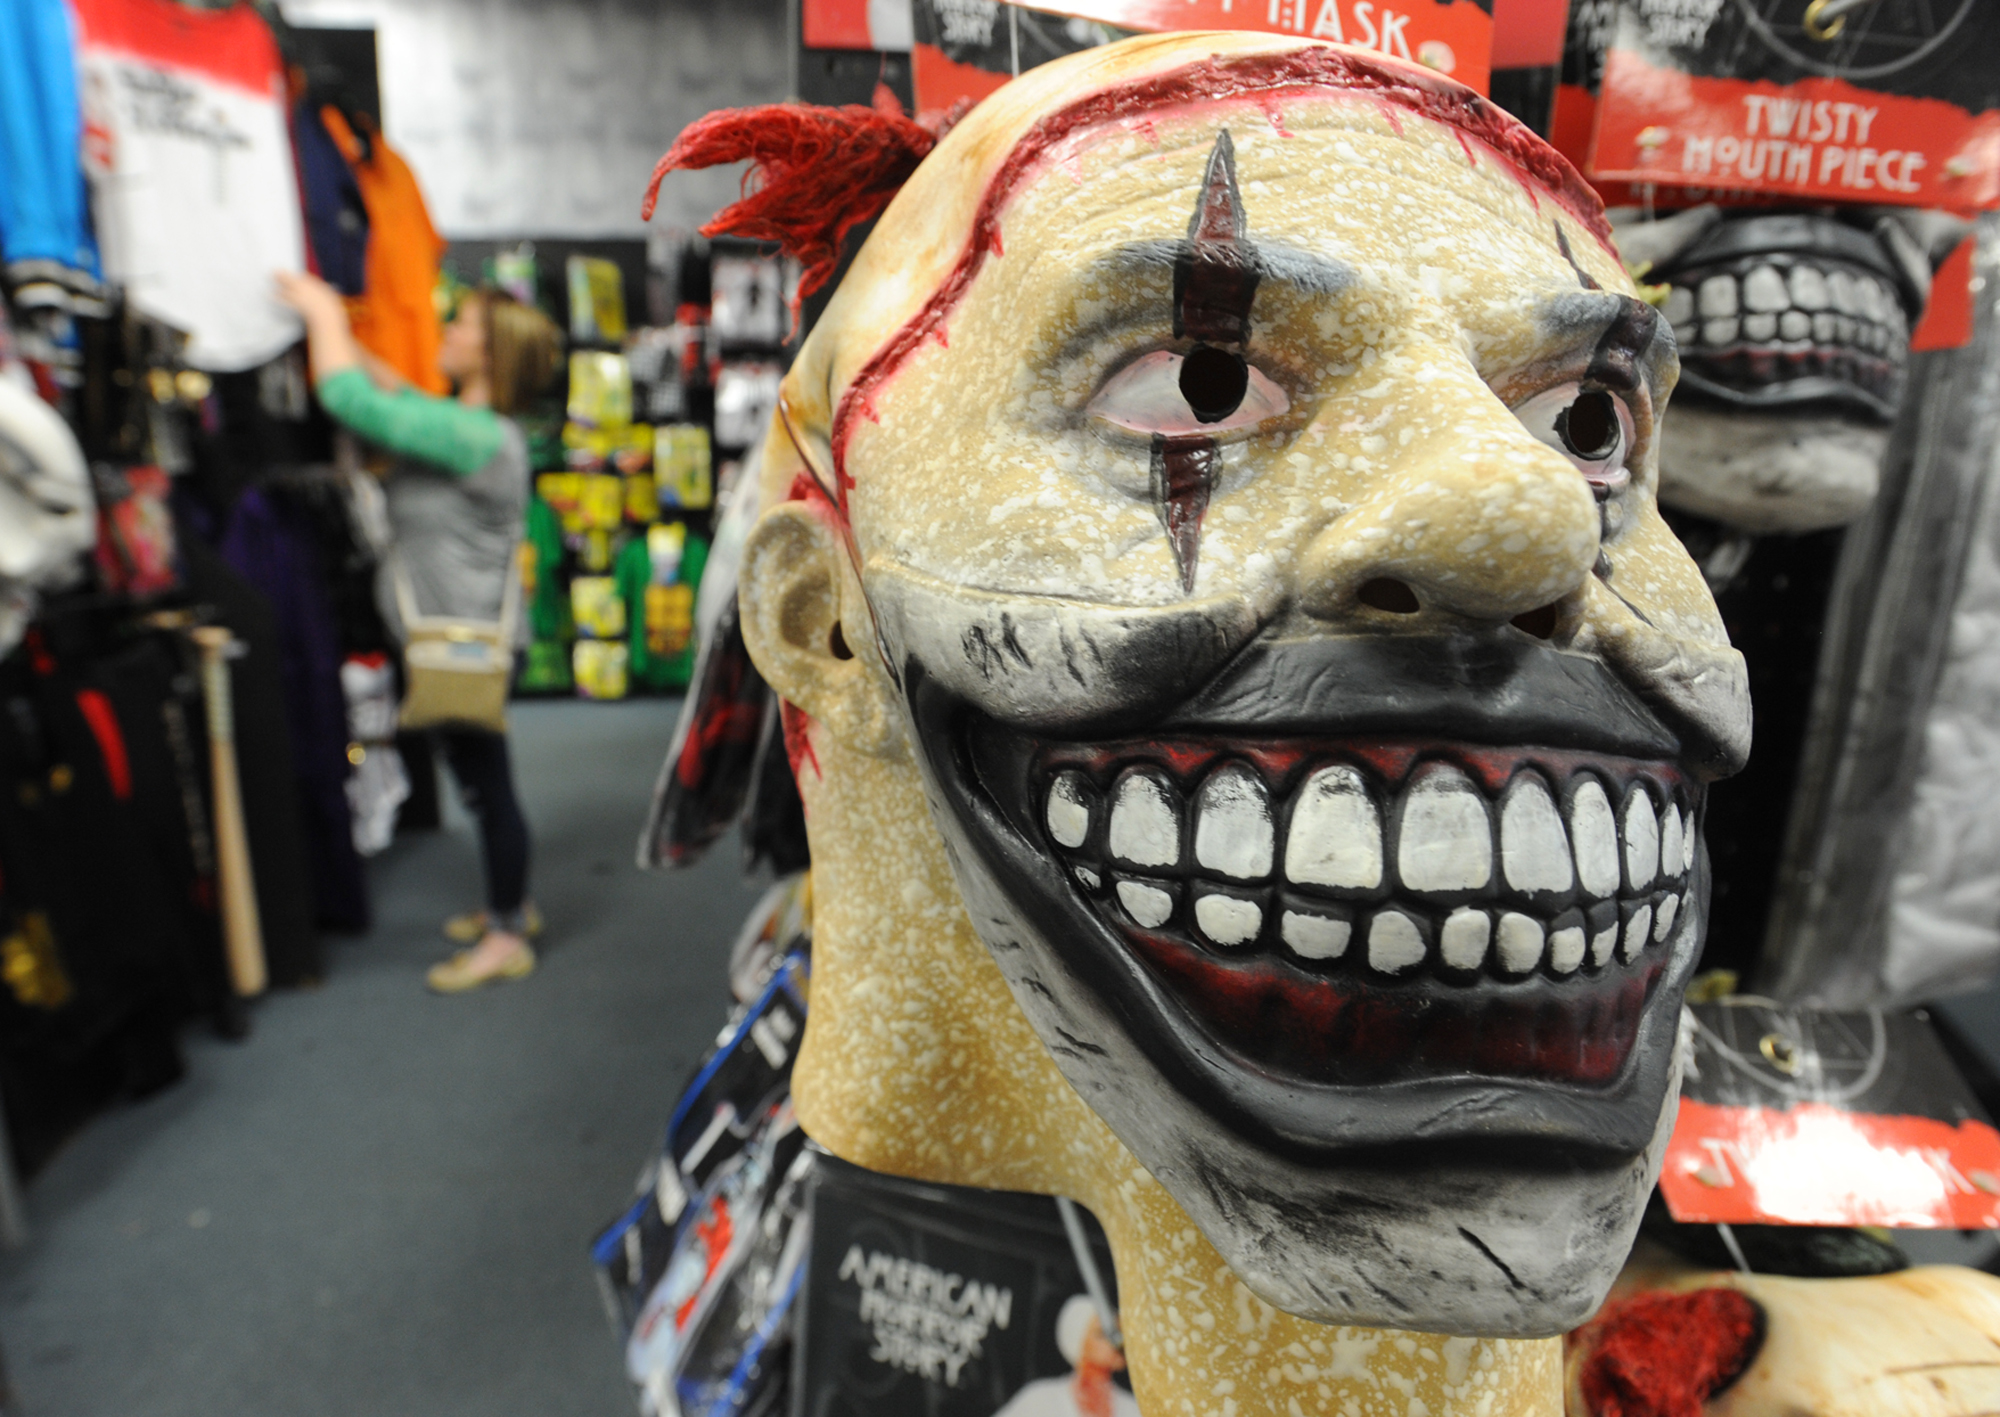 clown costume popularity comes amid heightened fear in southeast